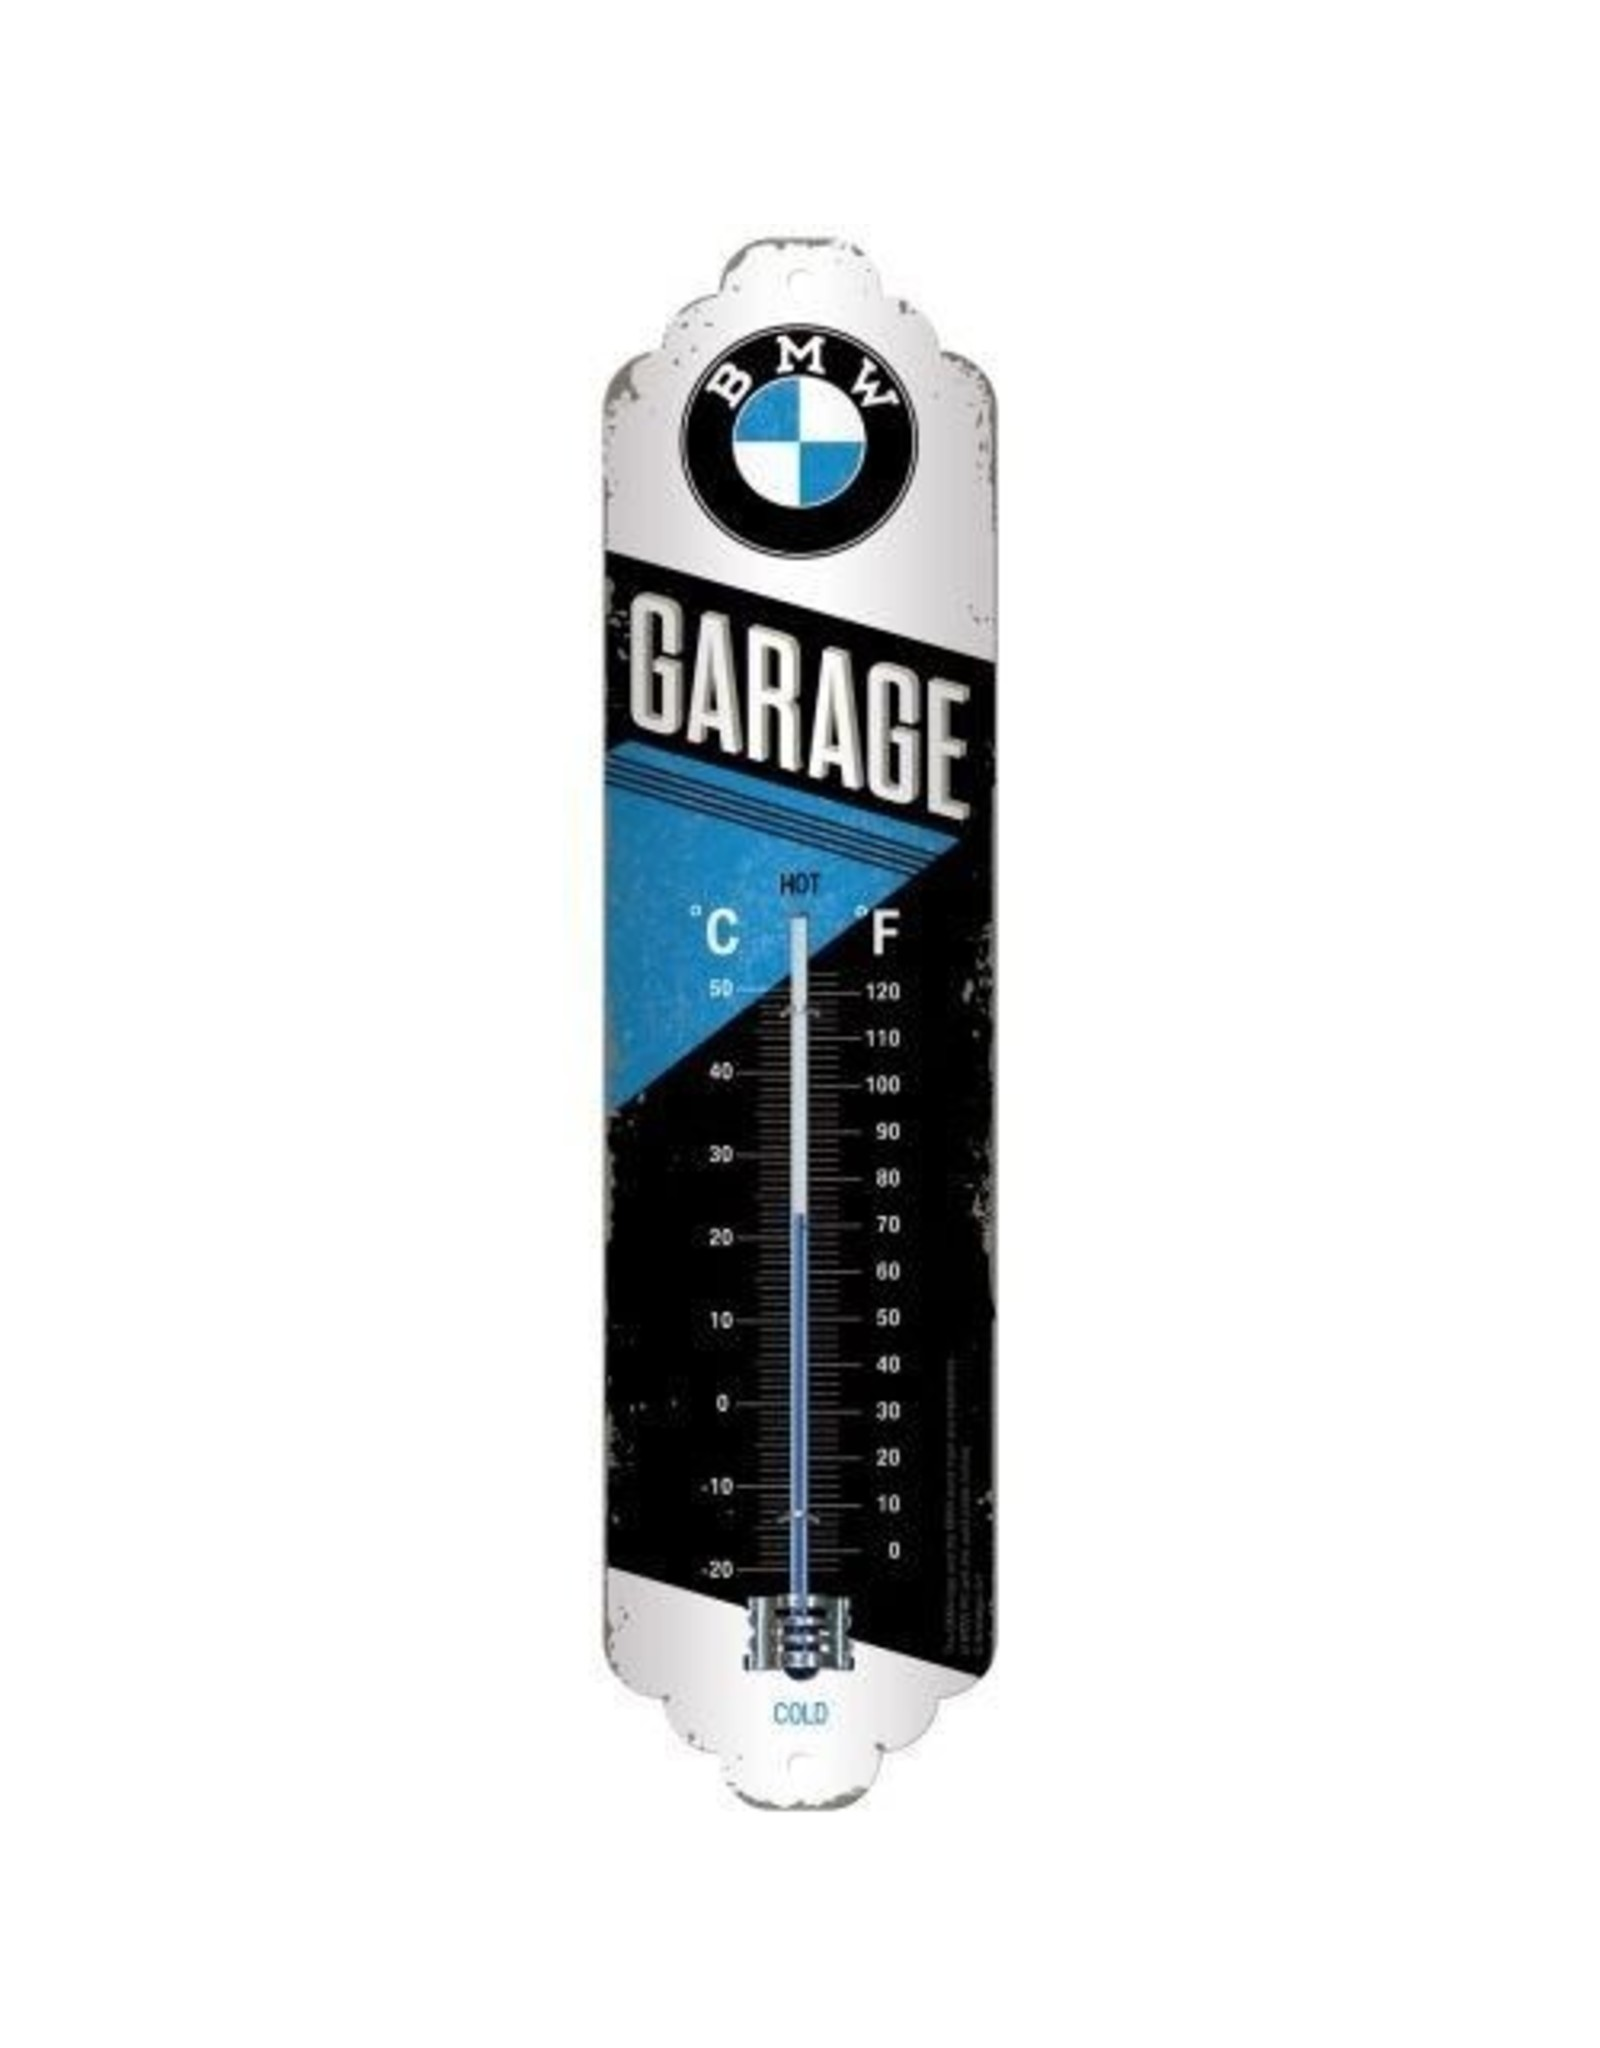 thermometer with BMW garage design